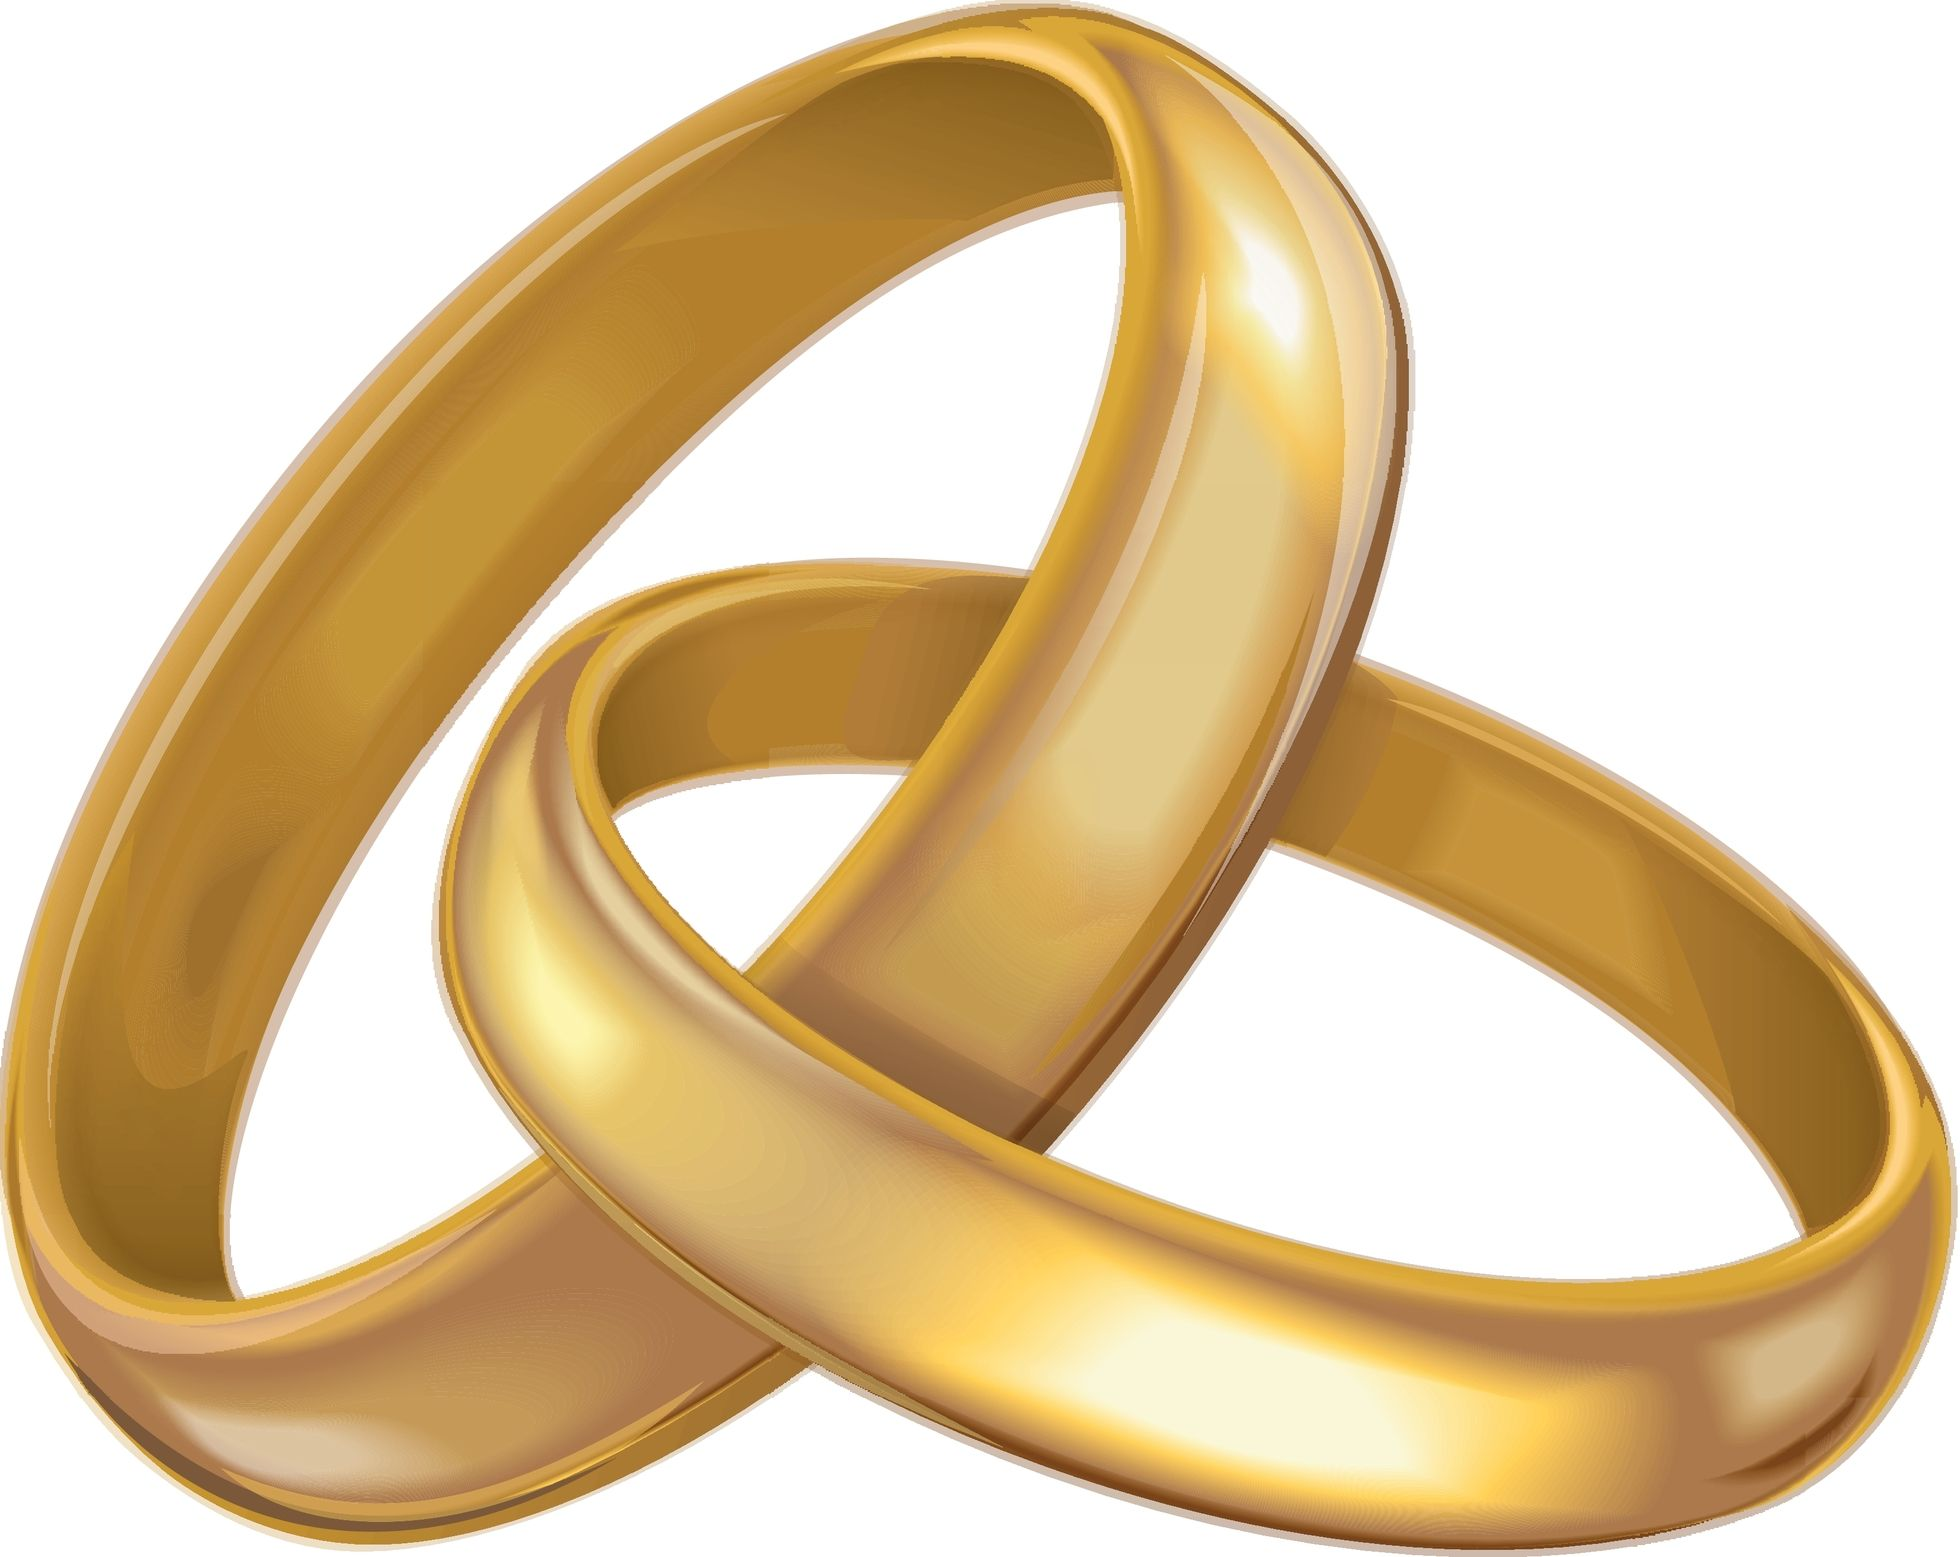 orange wedding rings Wedding bands sells wedding bands diamond anniversary rings and eternity bands for men and women